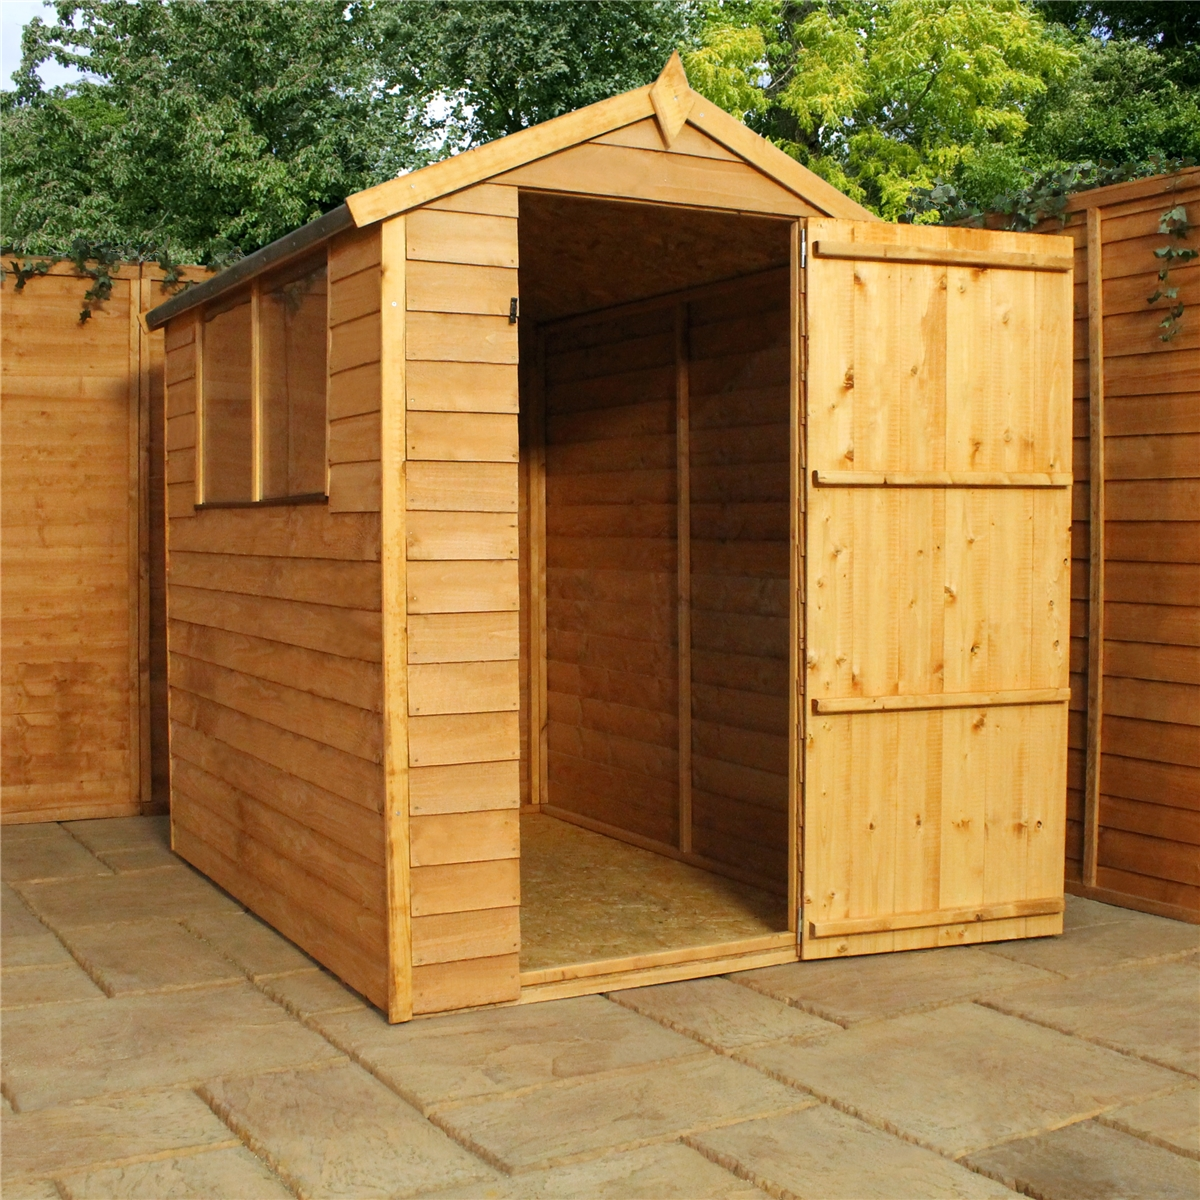 6 X 4 (1.79m X 1.31m) Overlap Apex Shed With Single Door